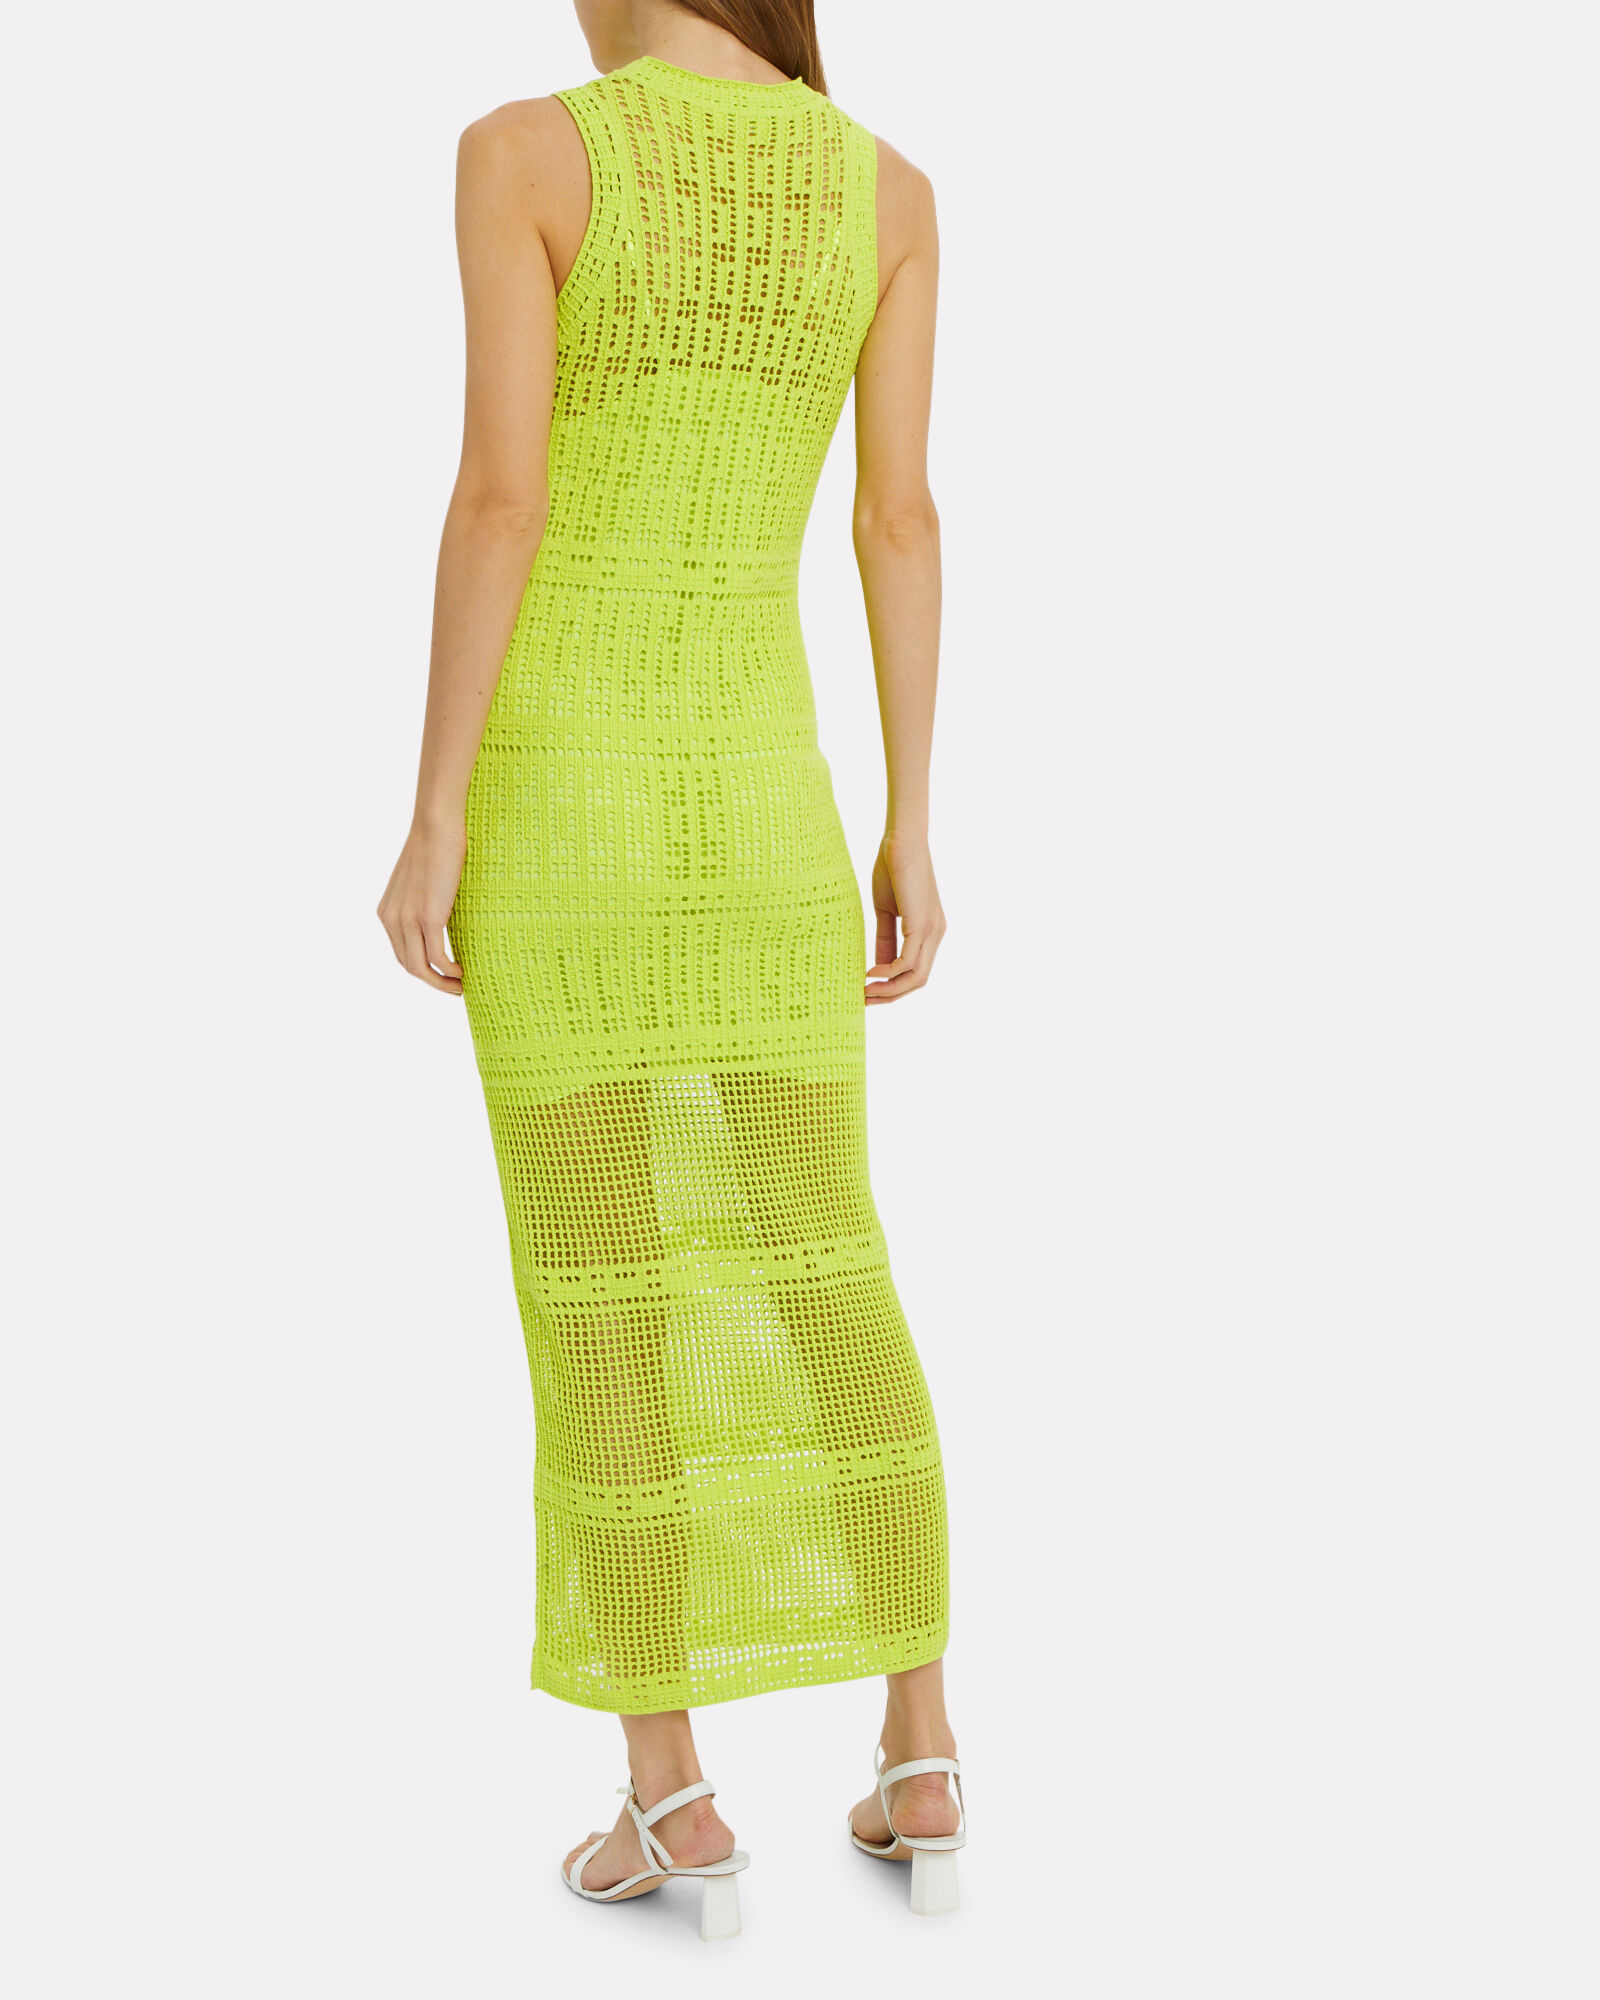 Monaghan Eyelet Sheath Dress, YELLOW, hi-res